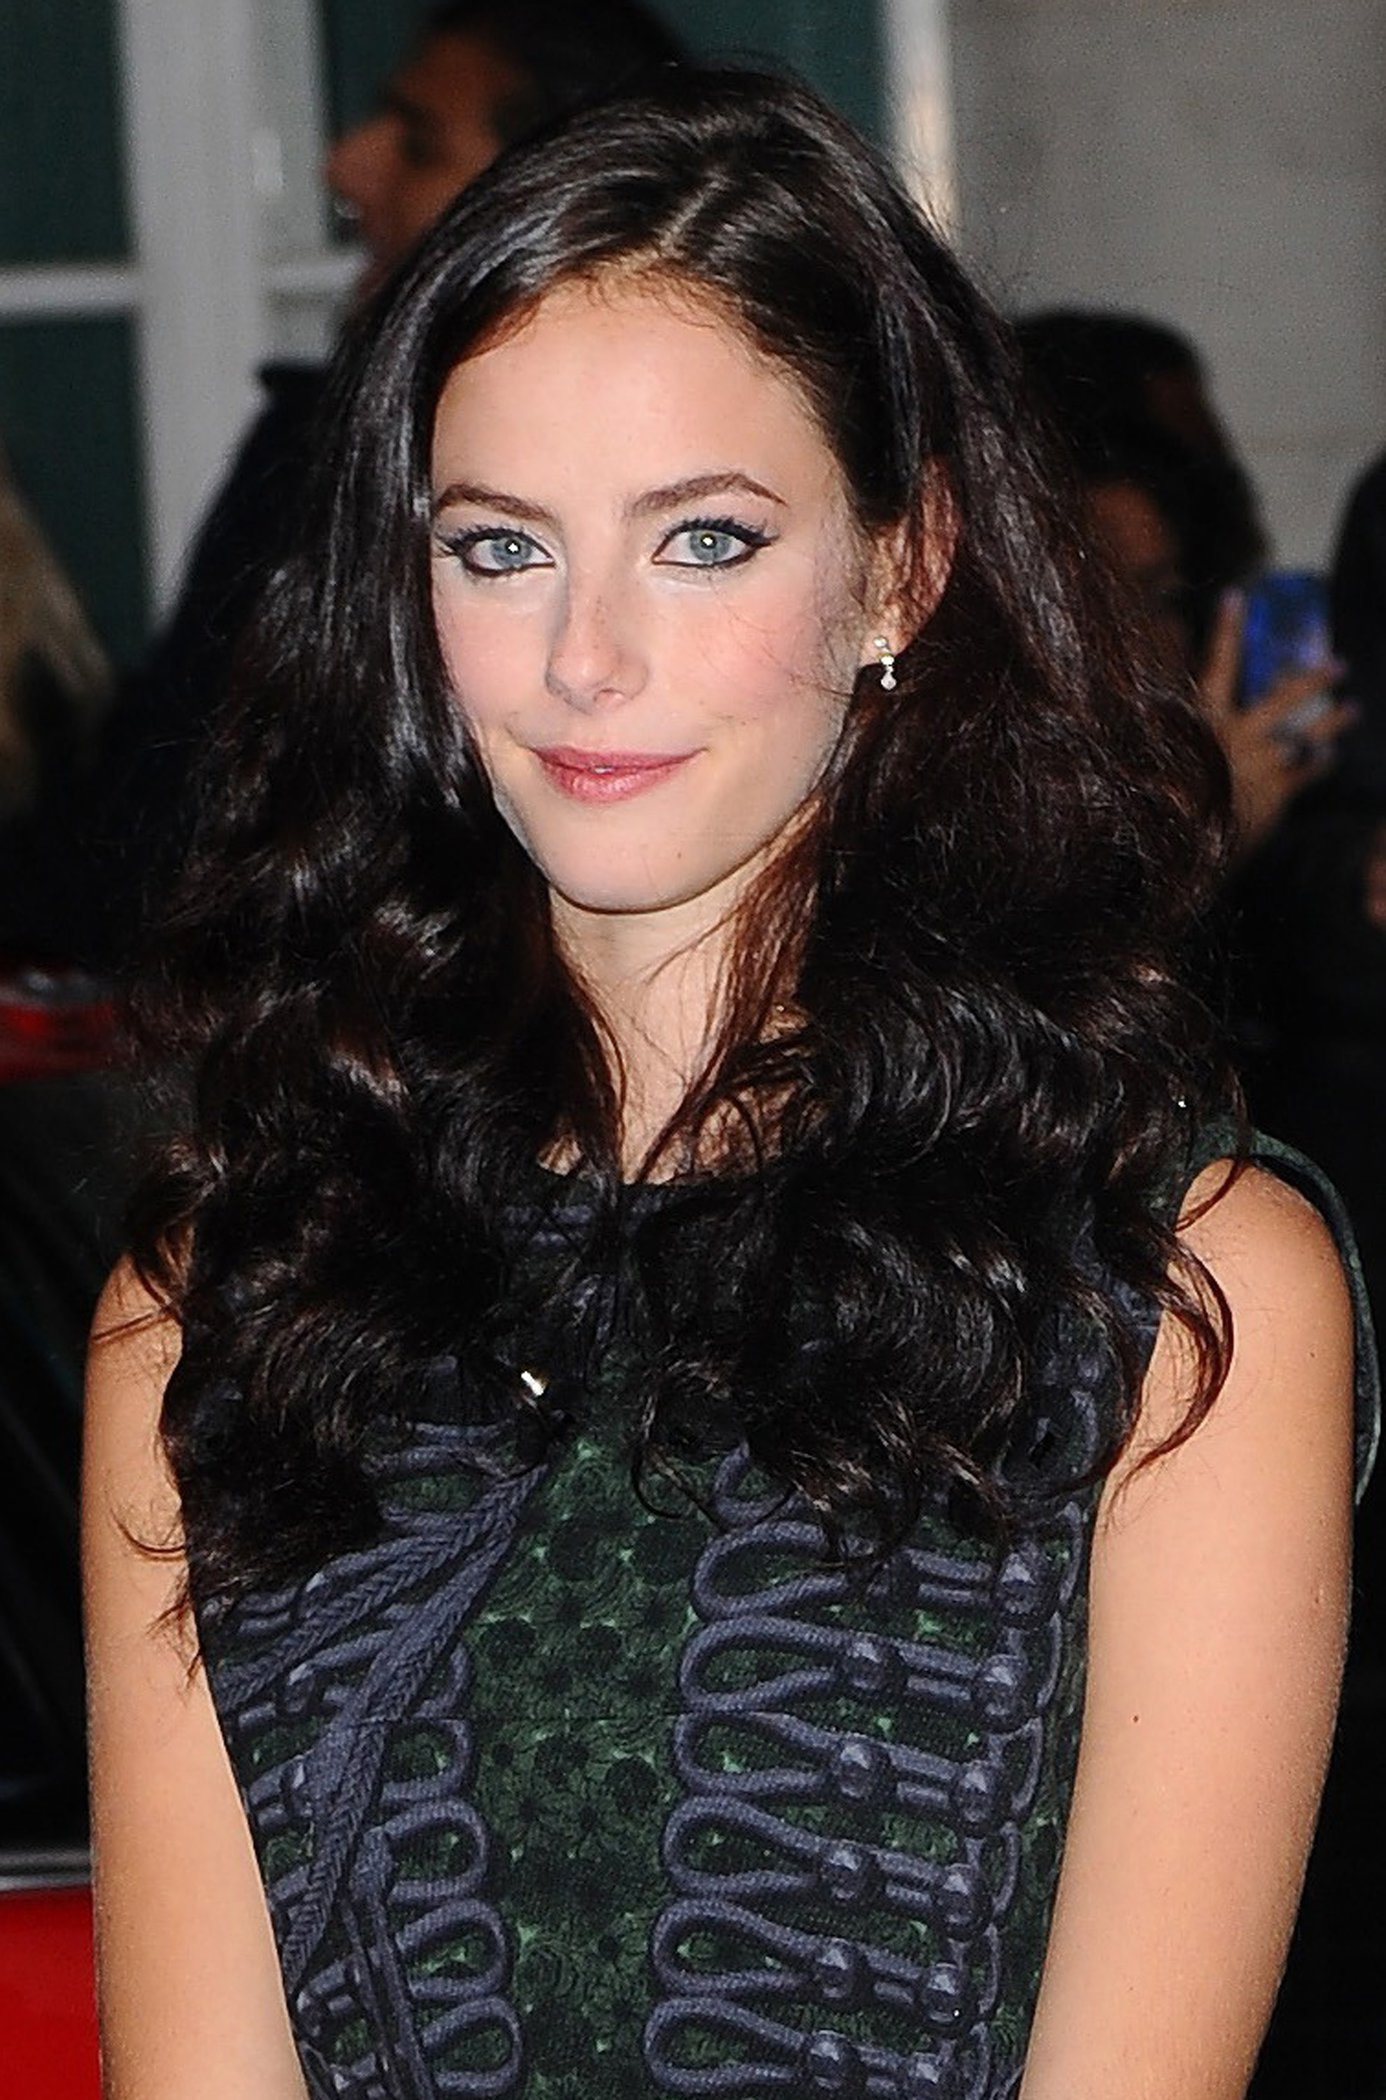 Kaya Scodelario - Now Is Good UK Premiere in London - September 13, 2012